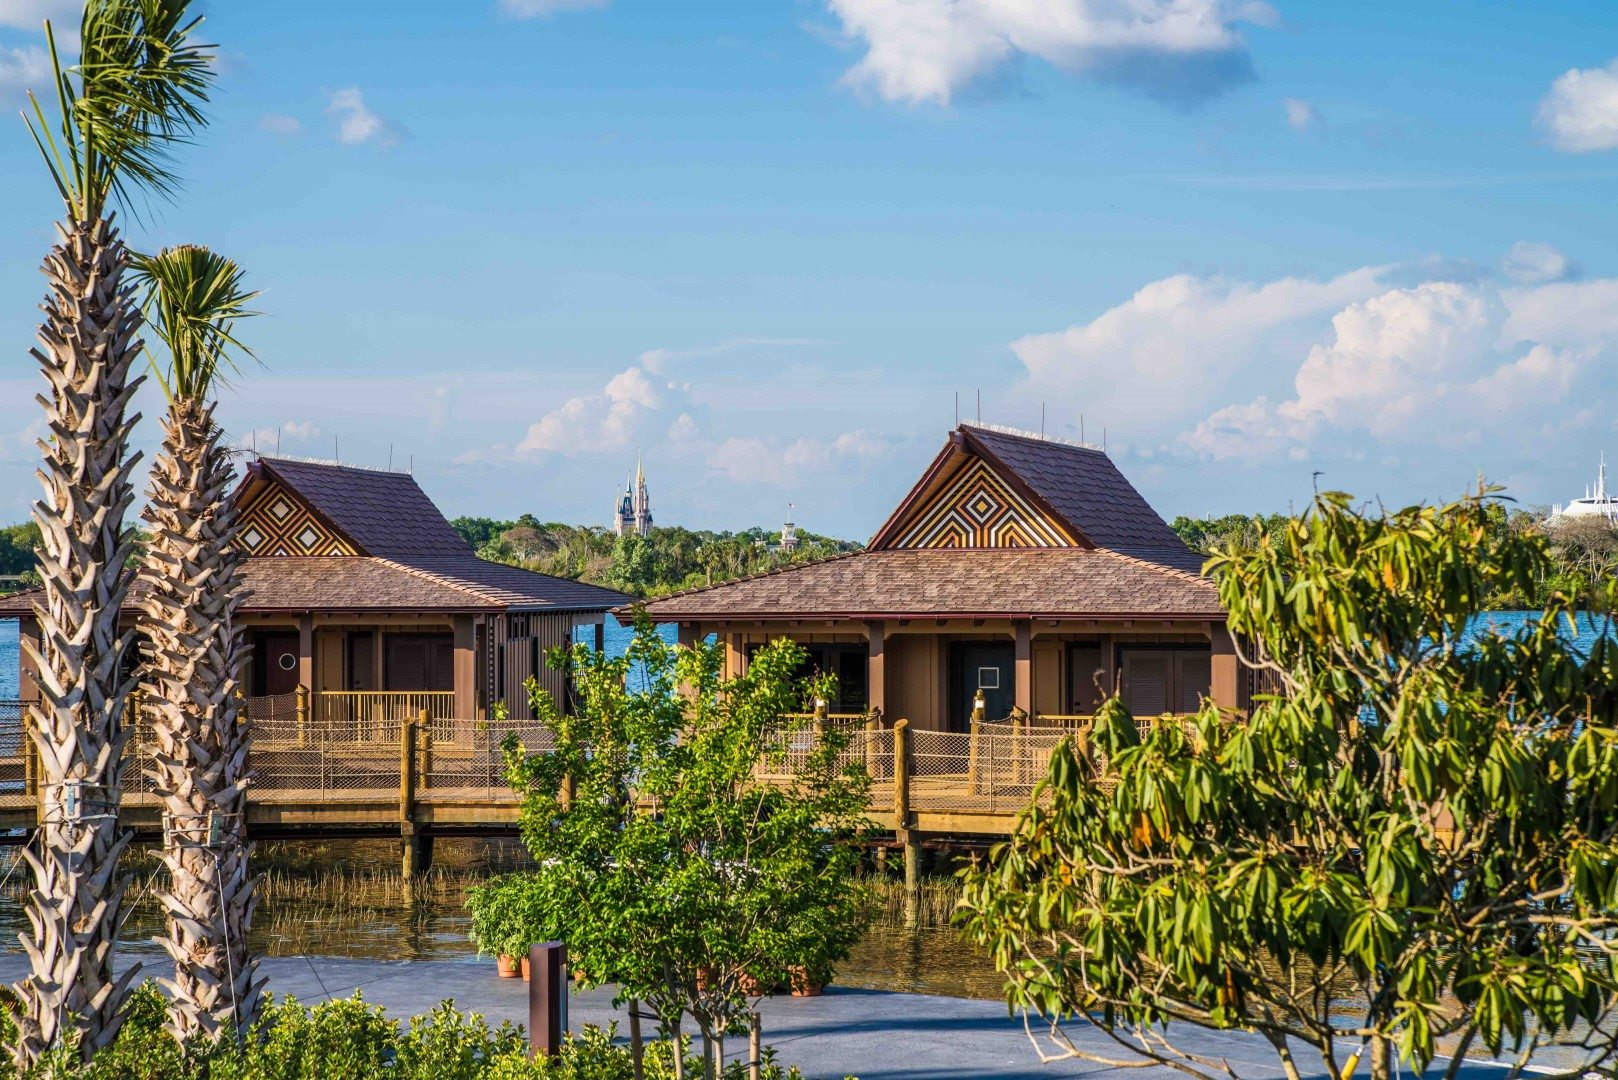 Cinderella's Castle can be spotted in the distance behind two bungalows at Disney's Polynesian Resort